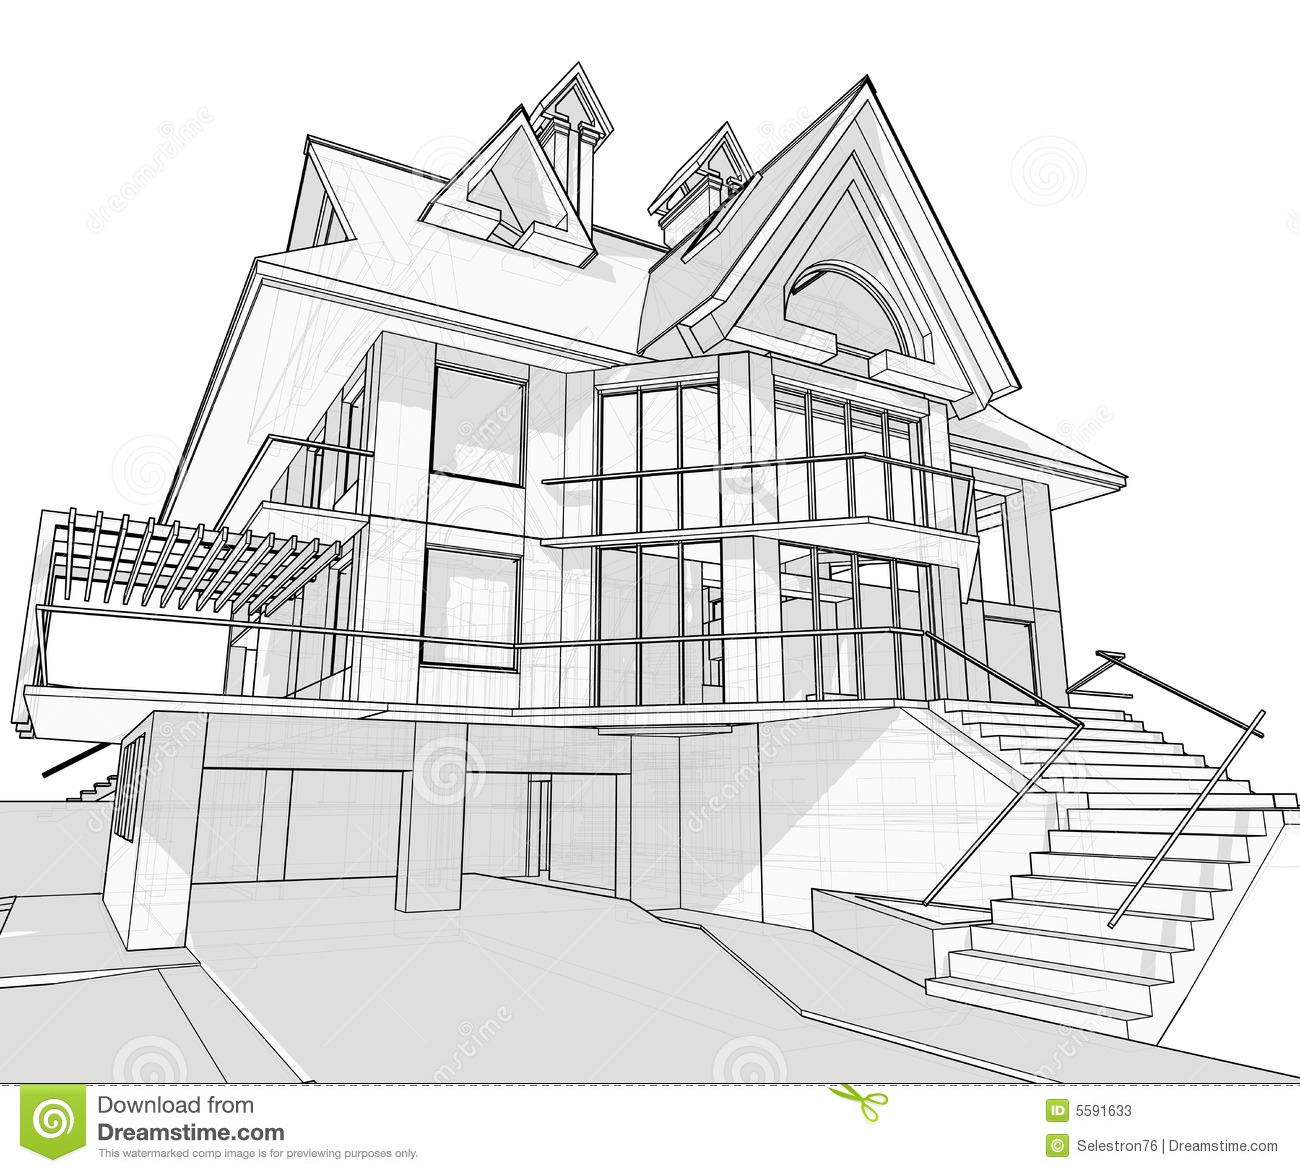 House architecture blueprint stock vector illustration for Architecture blueprints